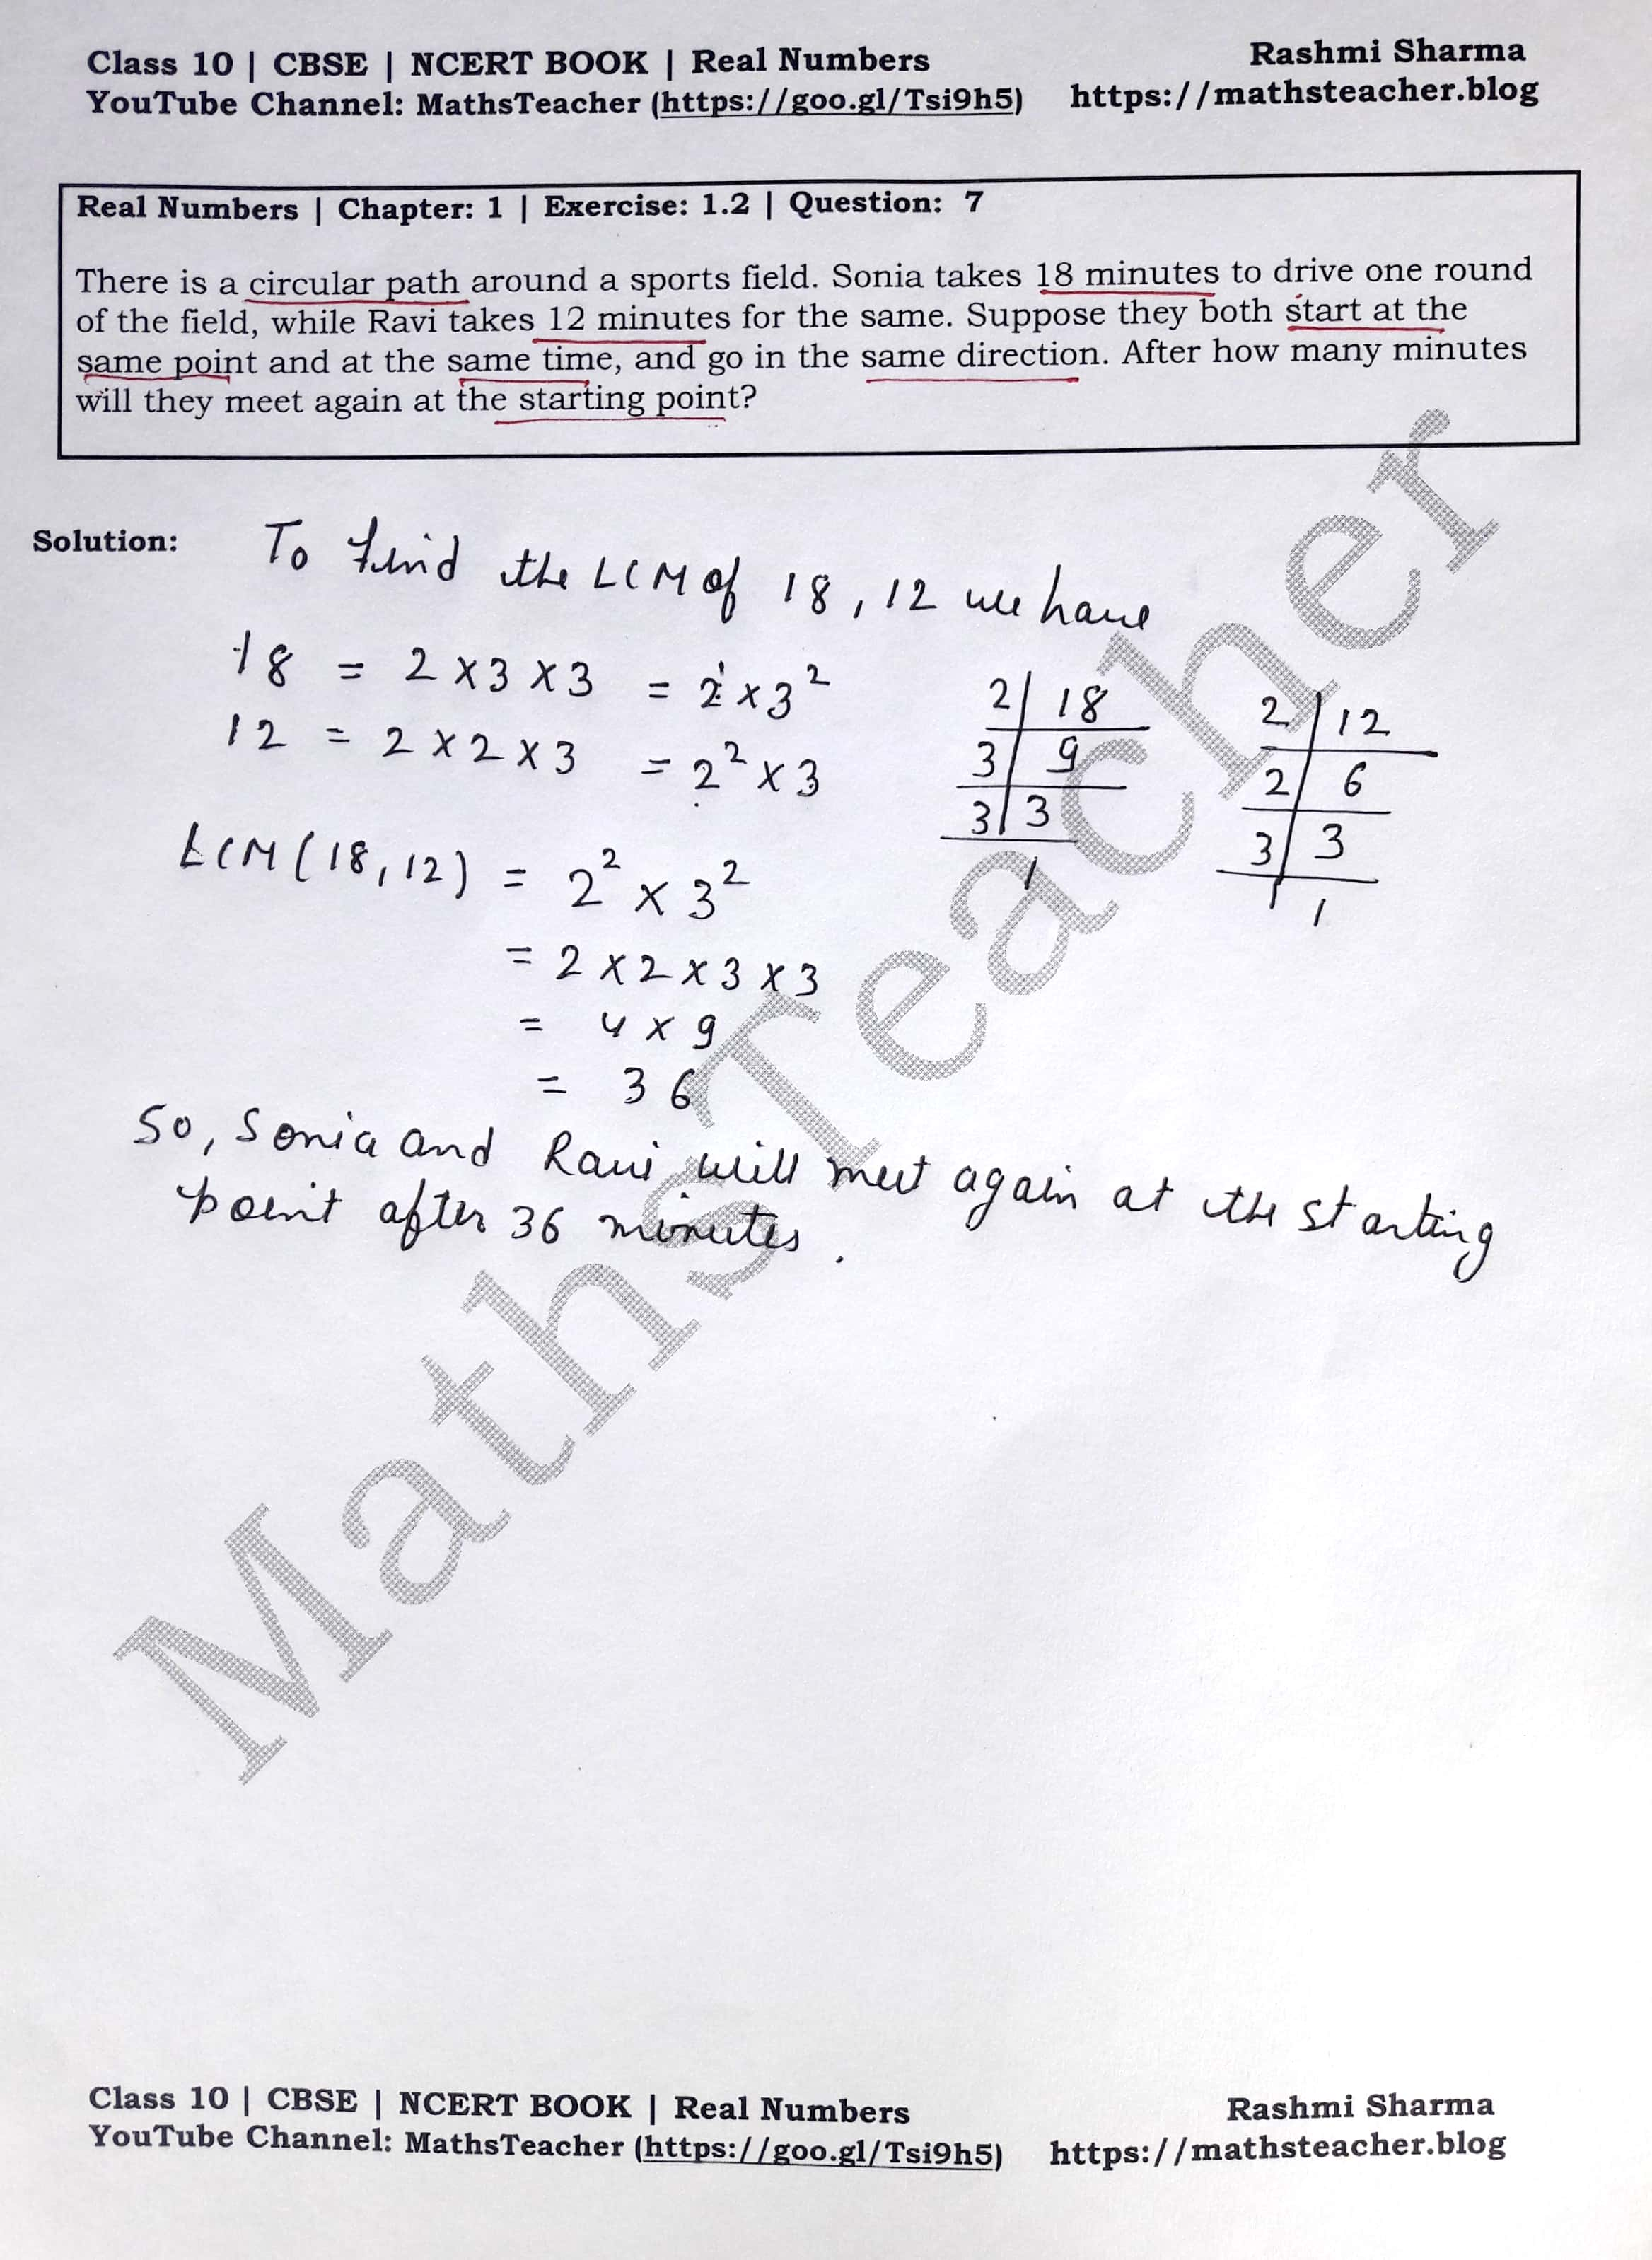 NCERT Solutions Class 10 Maths - Real Numbers | Chapter 1